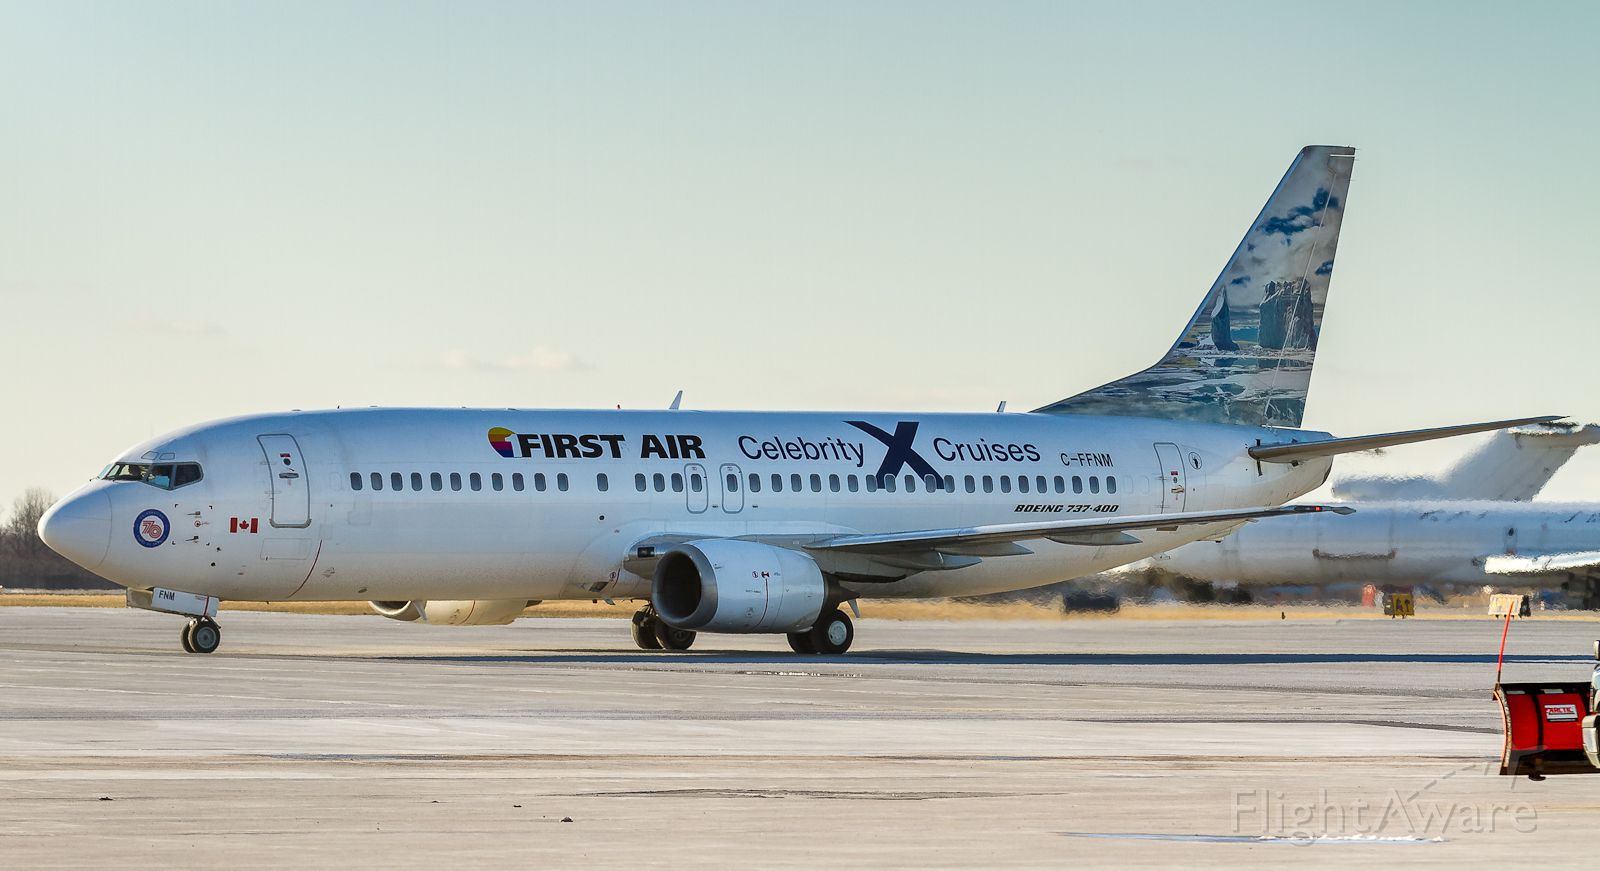 BOEING 737-400 (C-FFNM) - FAB6301 arrives into Hamilton from Ft. Lauderdale bringing Celebrity cruise patrons back to cooler climes!